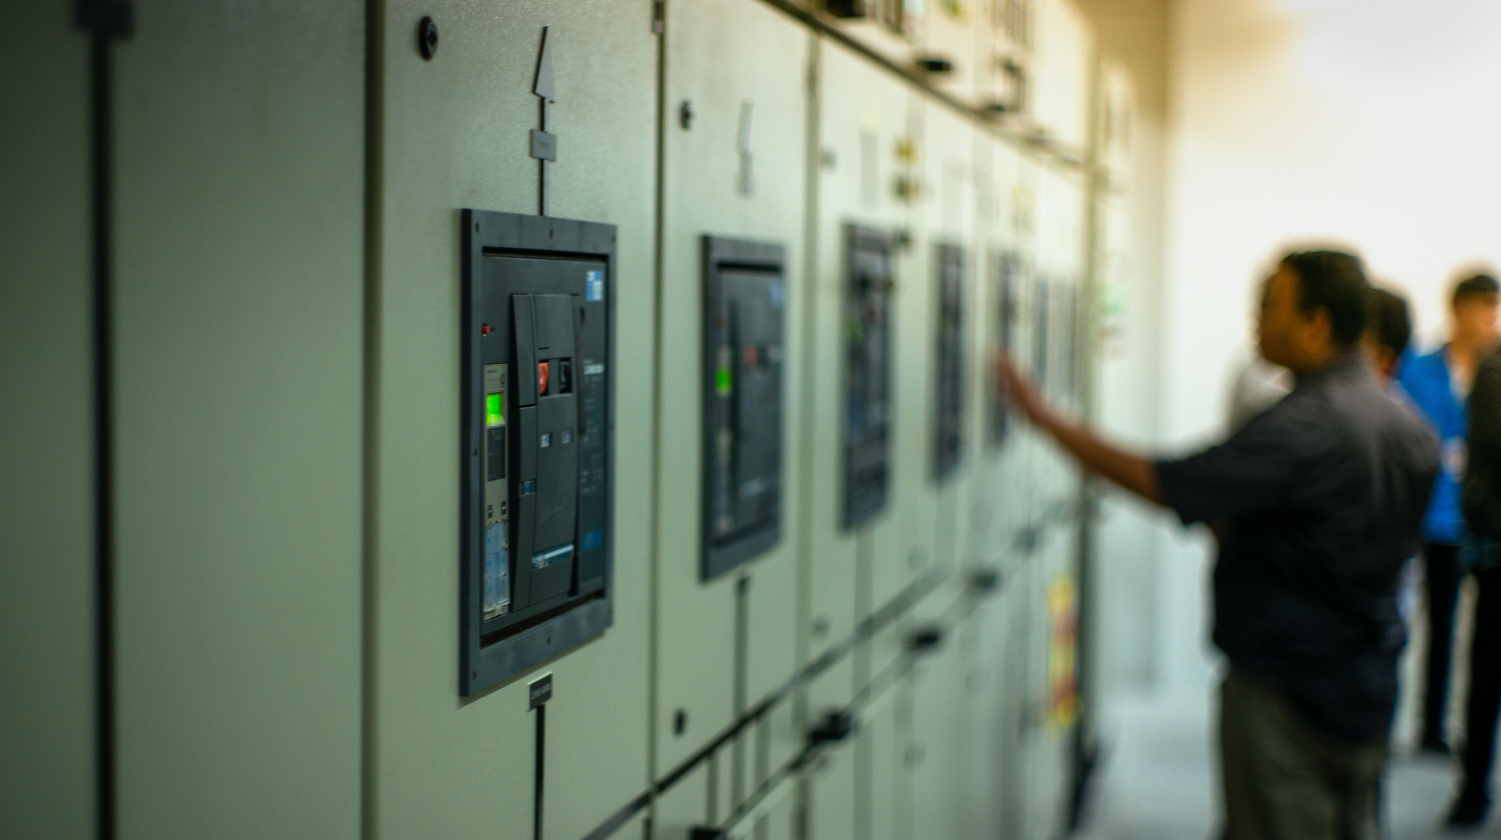 Advice expand and modify your energised Low-Voltage Switchboard